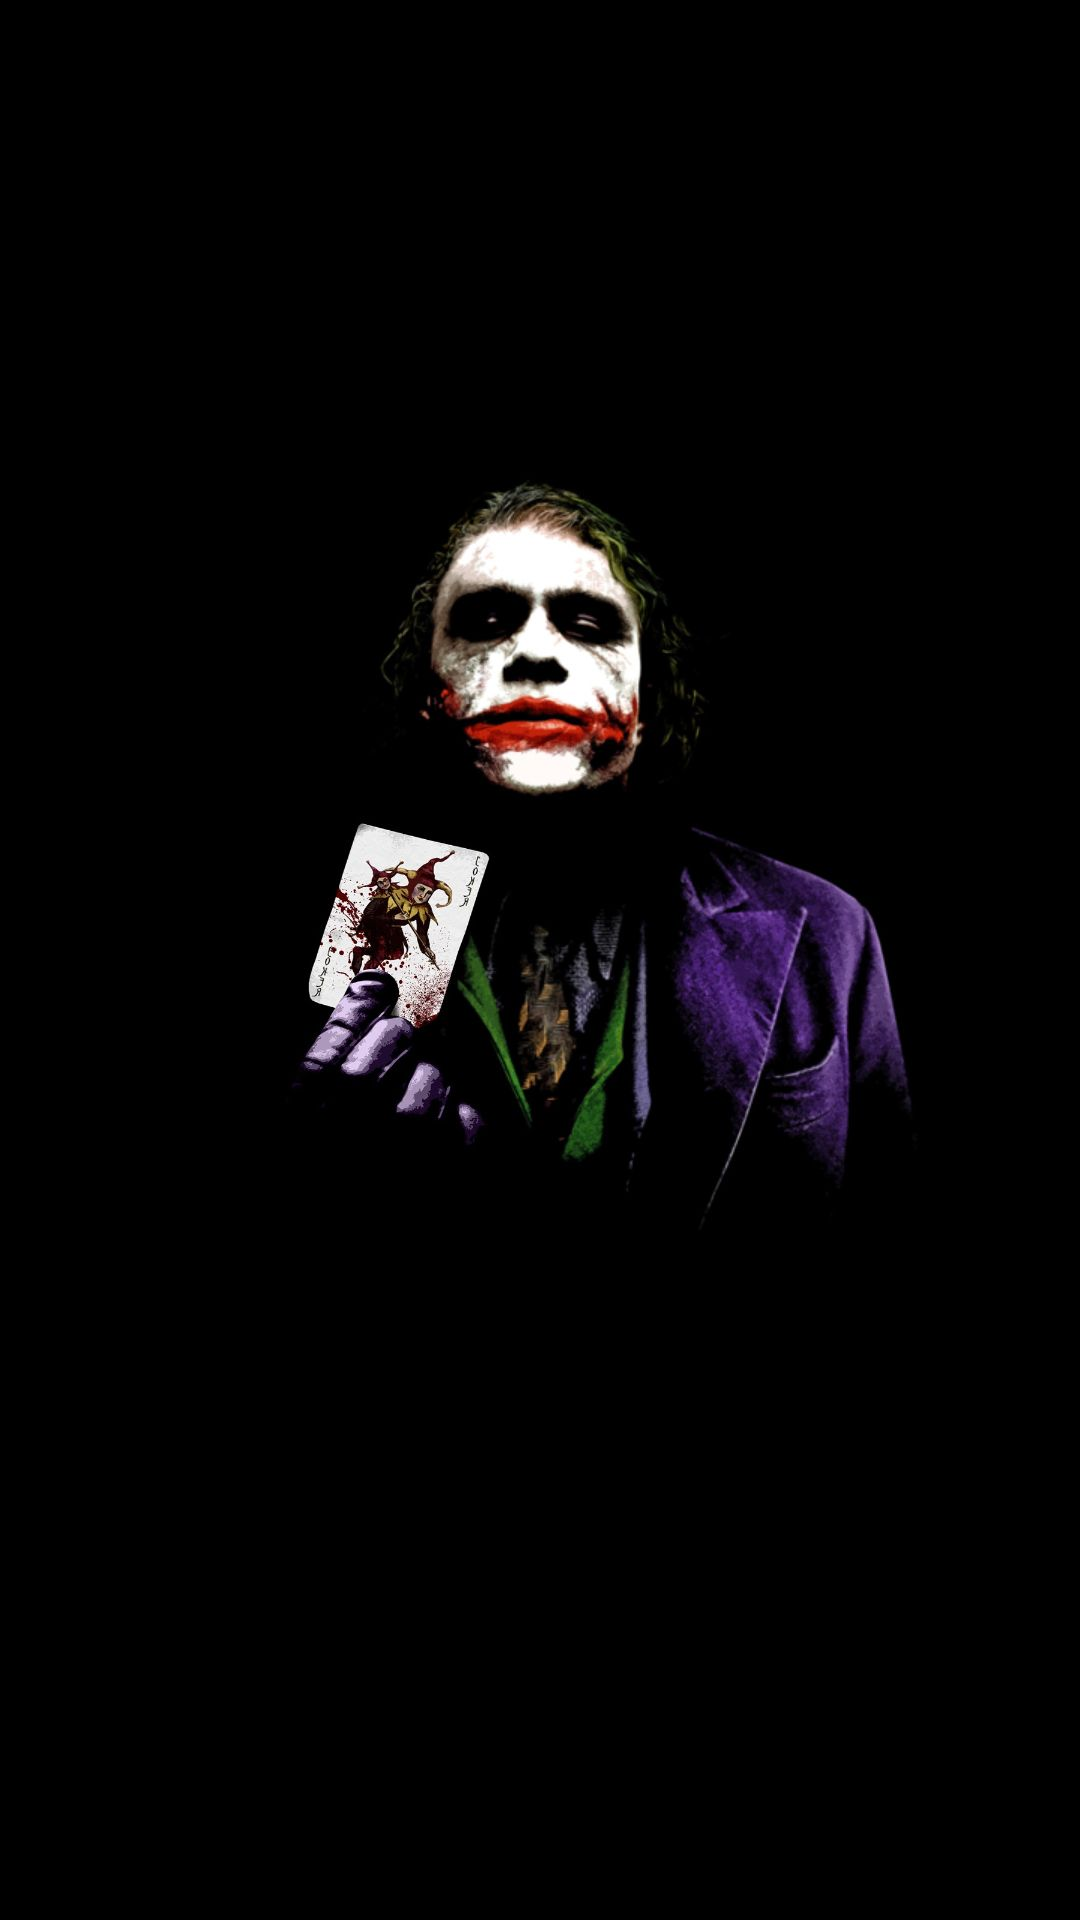 Pin By Anh Nguyen On Wallpaper Iphone 7 Plus Joker Wallpapers